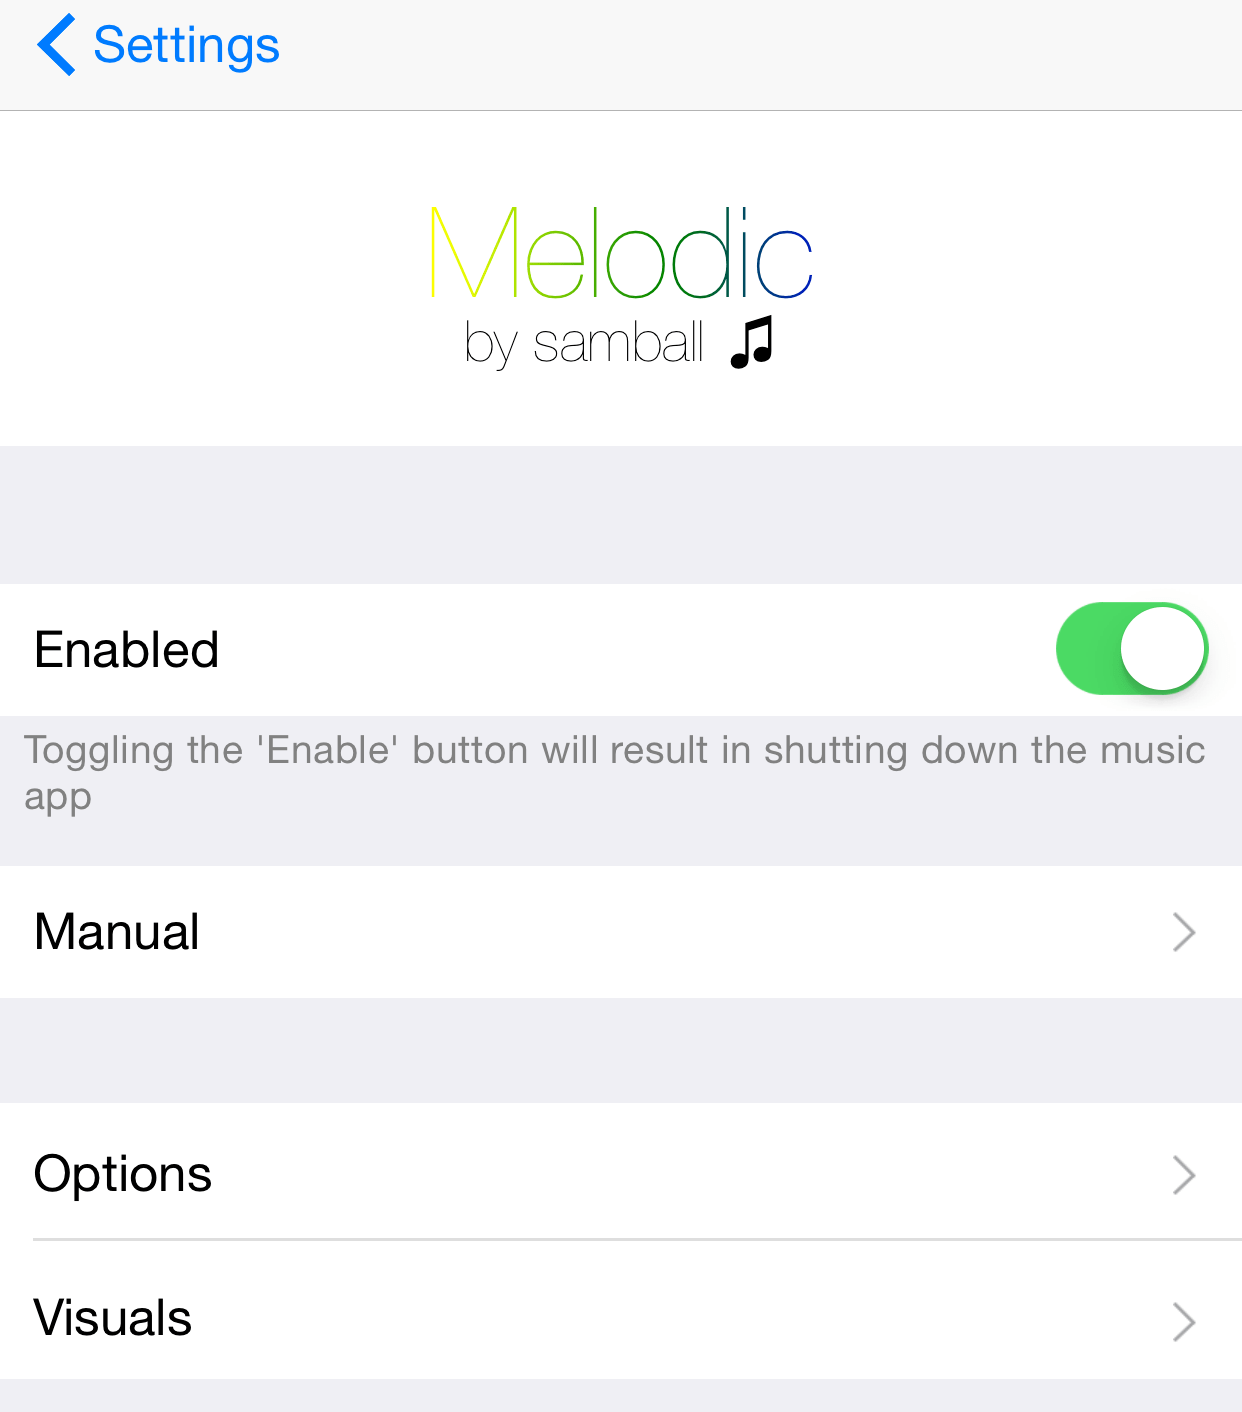 Melodic brings new sharing, metadata editing, and queuing